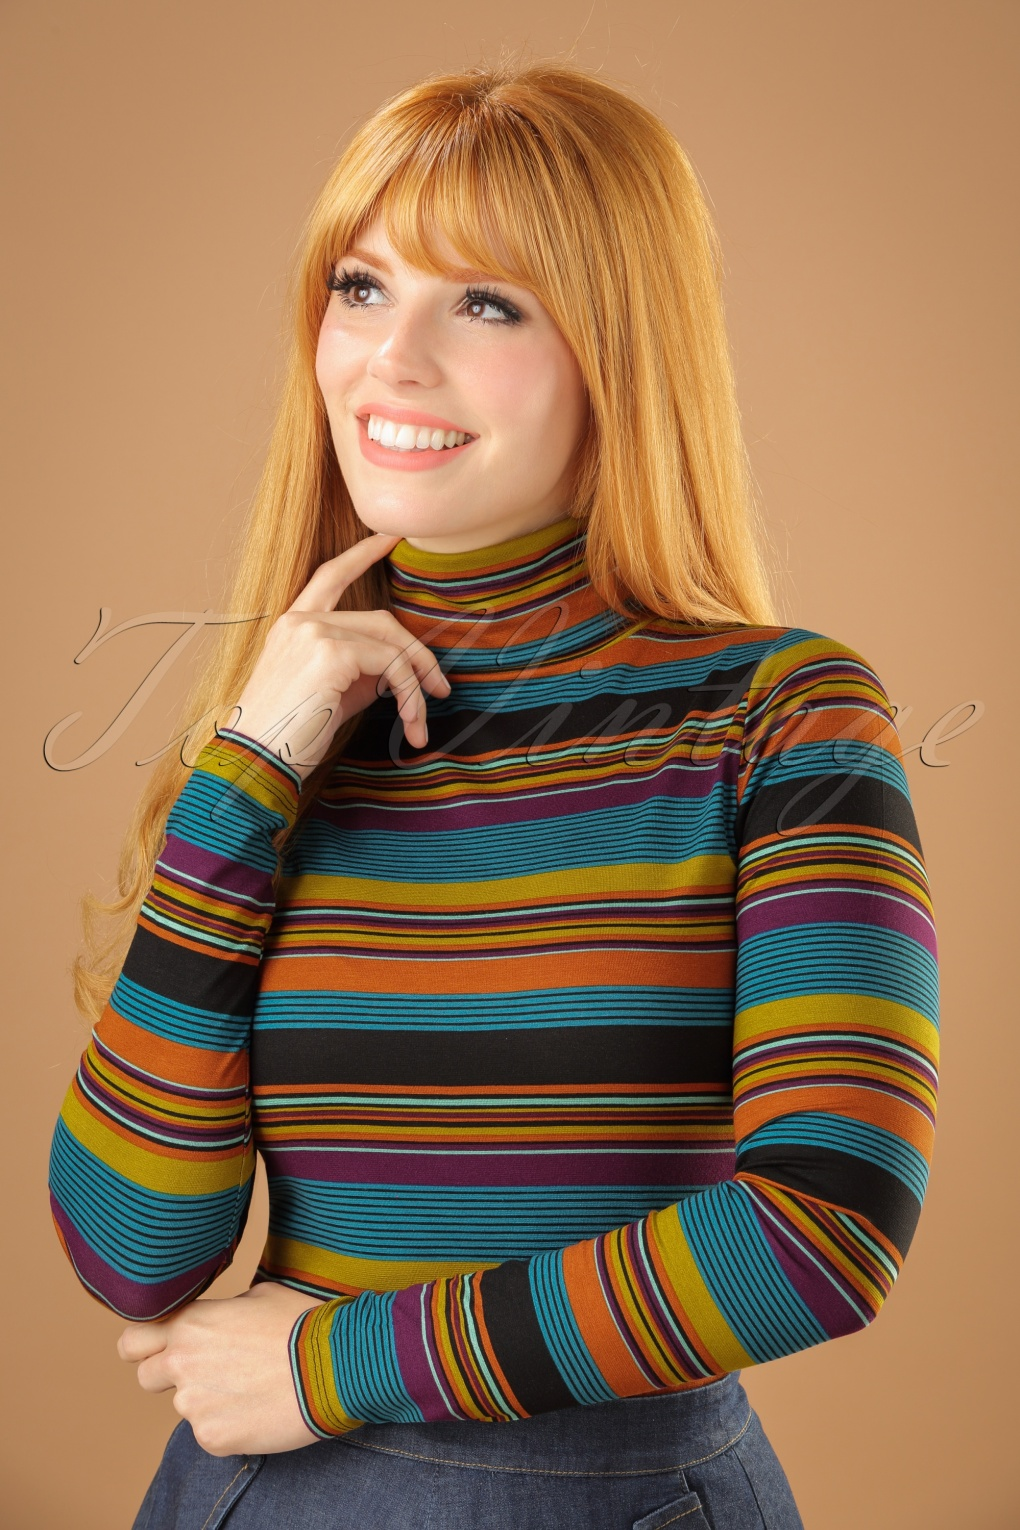 Vintage Sweaters: 1940s, 1950s, 1960s Pictures 60s Betsy Vision Rollneck Top in Lake Blue £50.00 AT vintagedancer.com